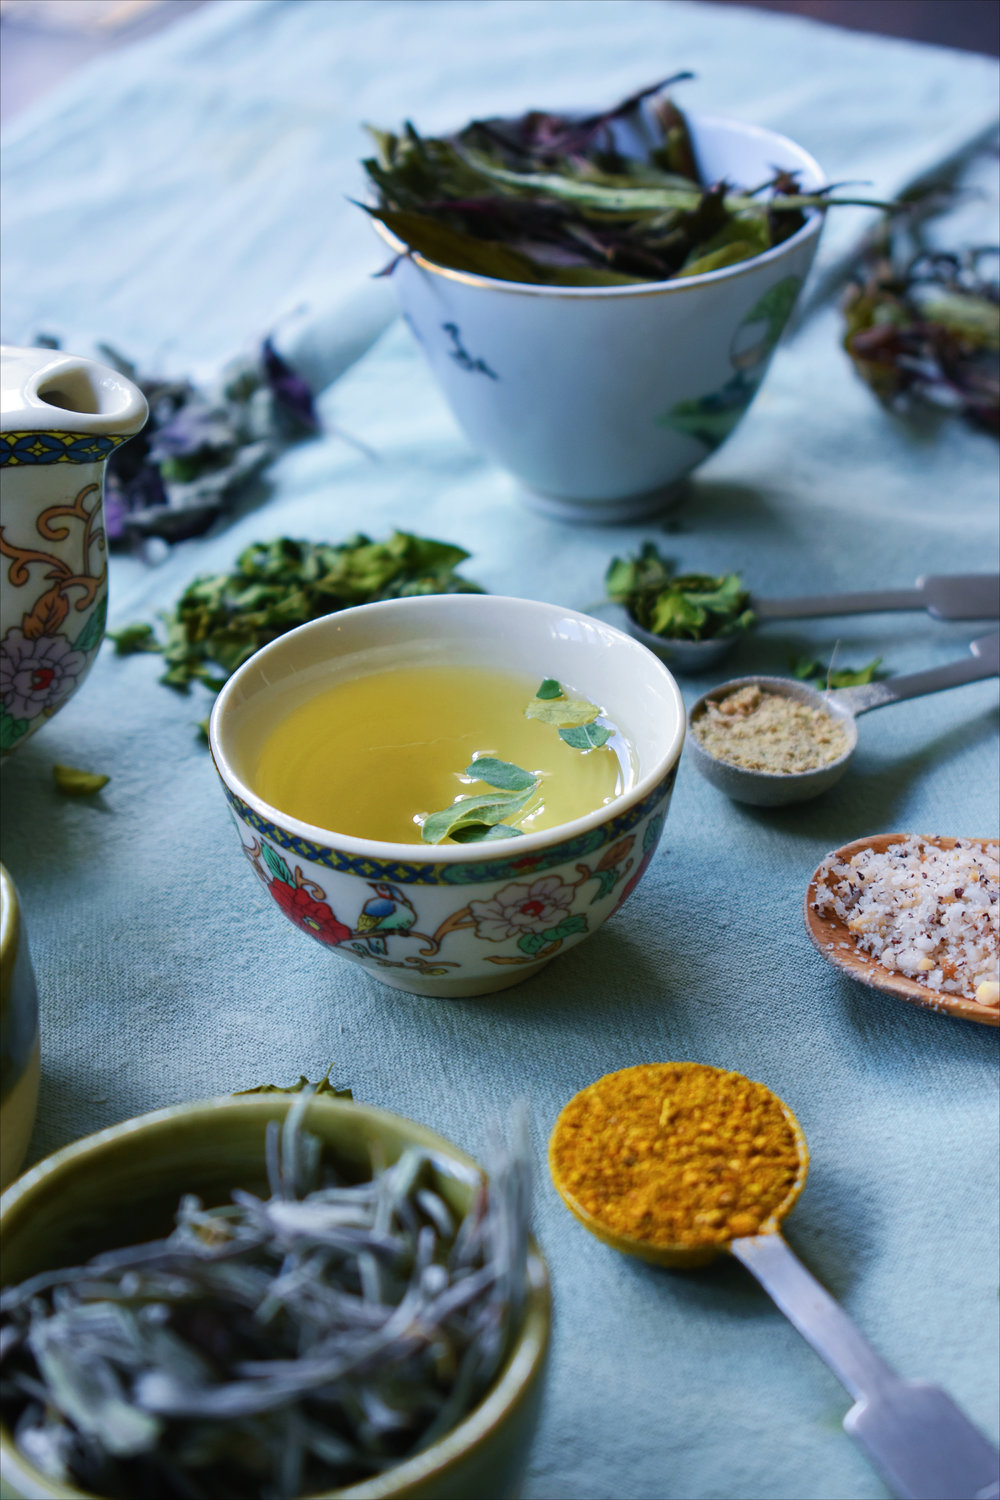 Herbal tea and spices